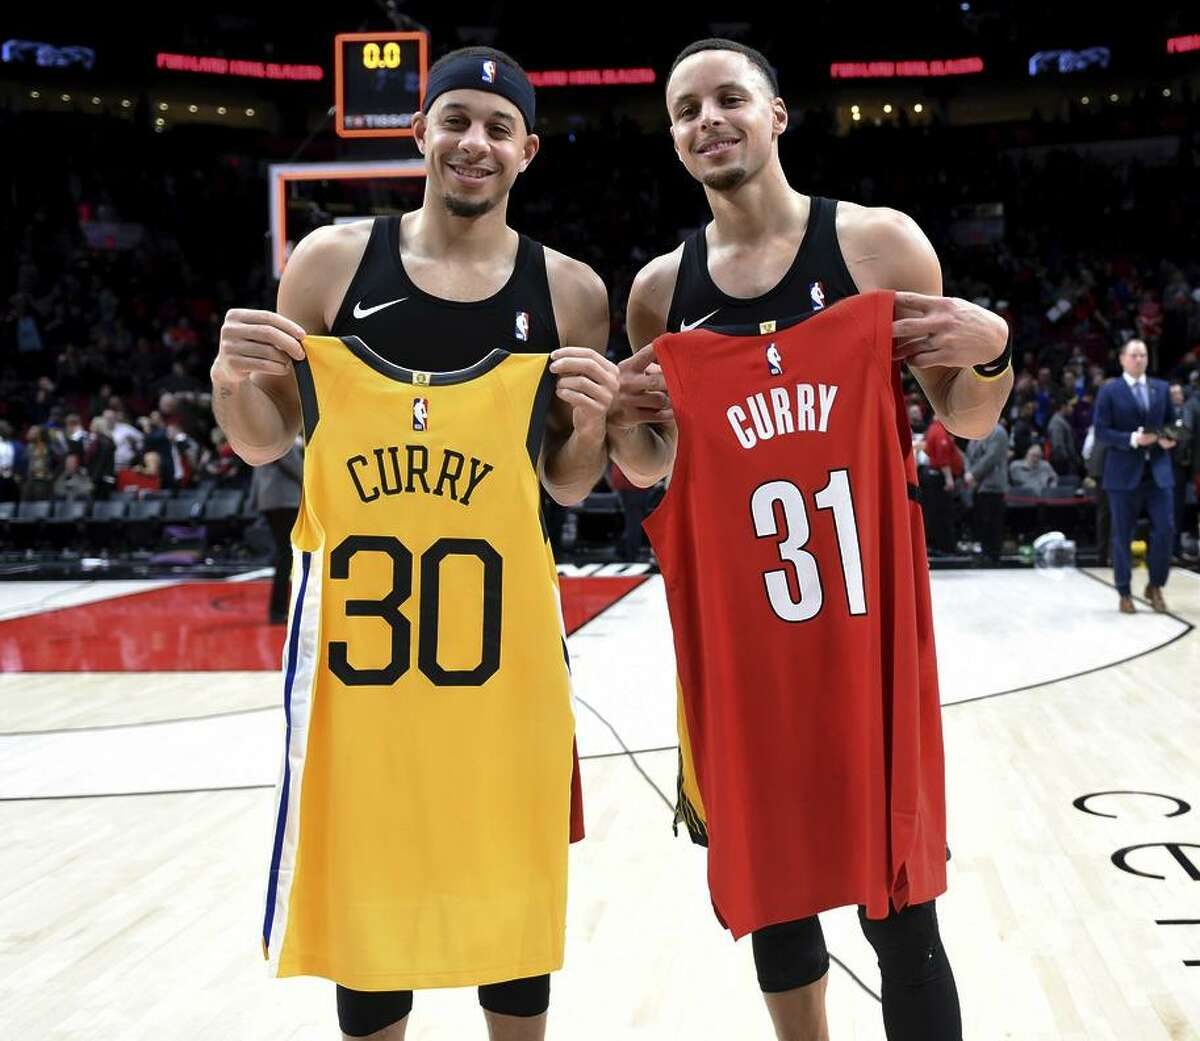 Trail Blazers guard Seth Curry (left) and his brother, Warriors guard Stephen Curry, swap jerseys after a game in Portland.